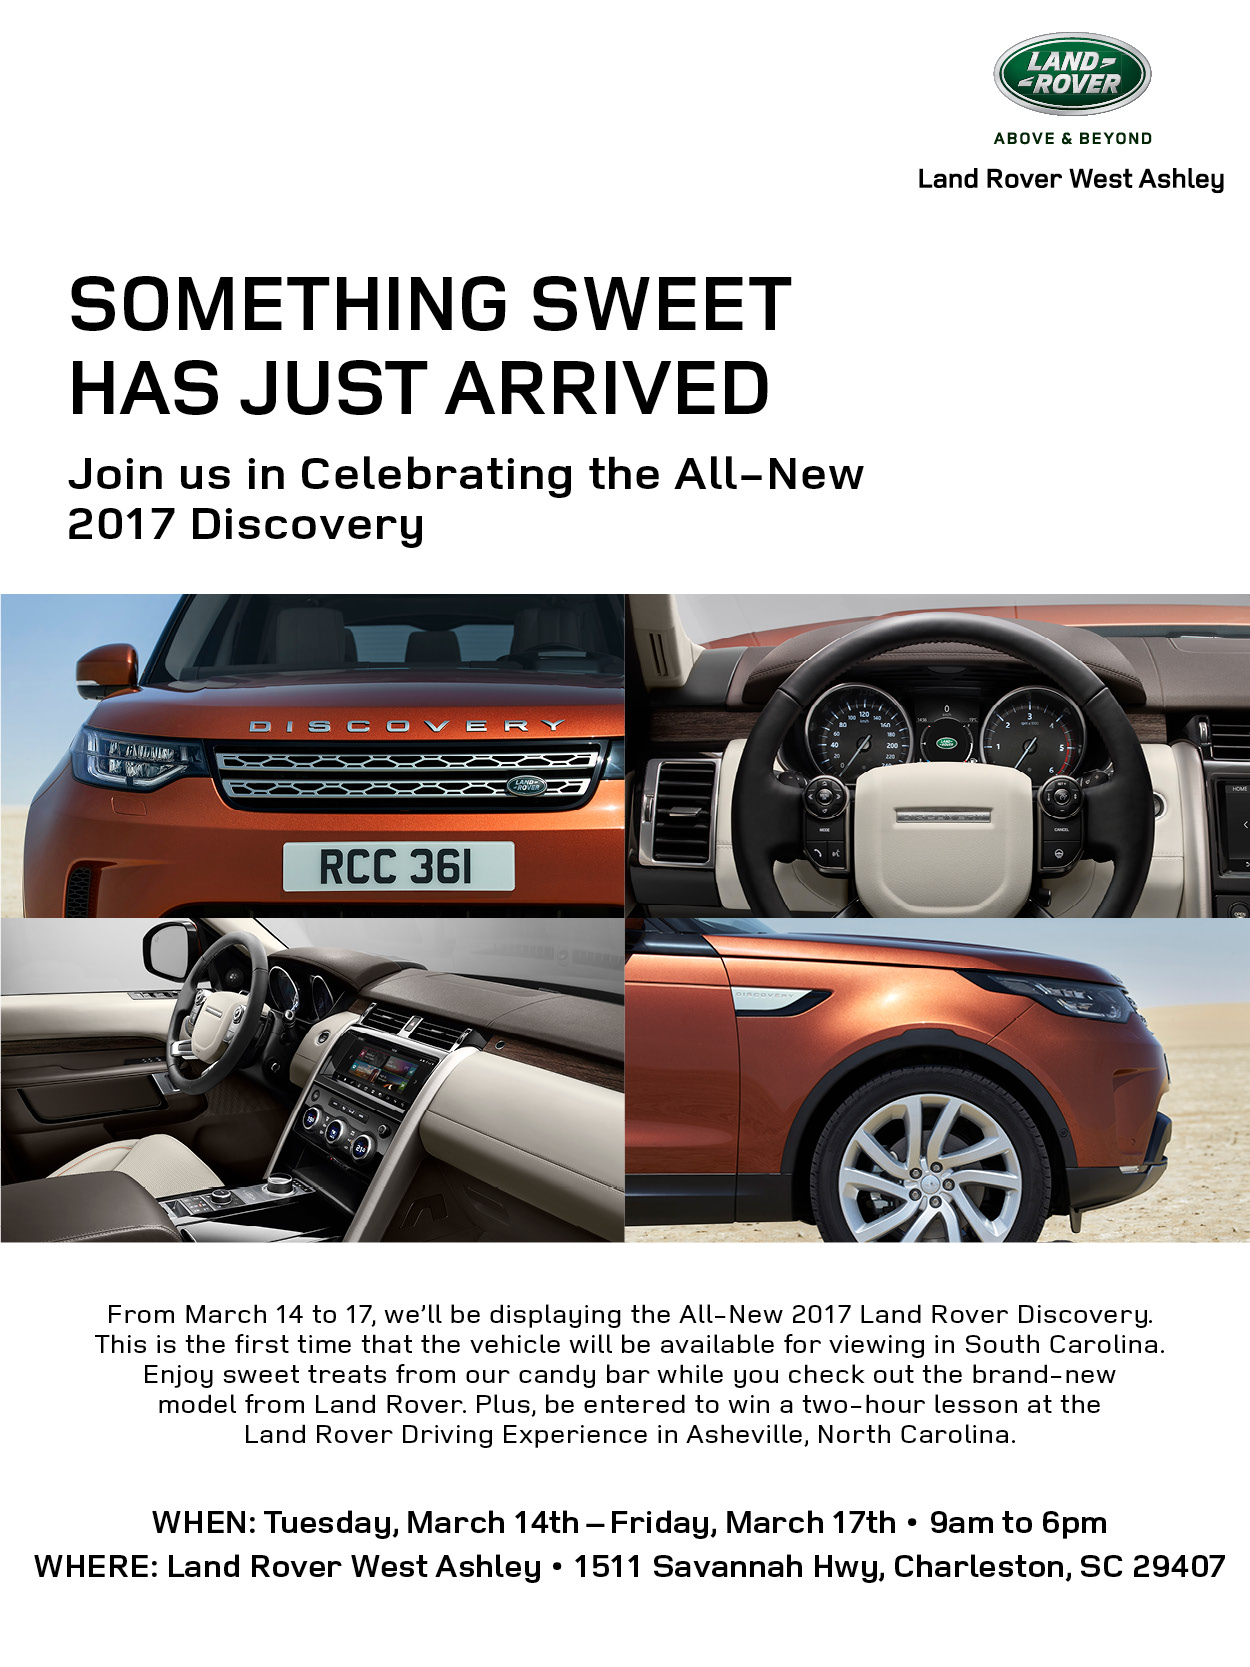 Join Us in Celebrating the All-New 2017 Discovery